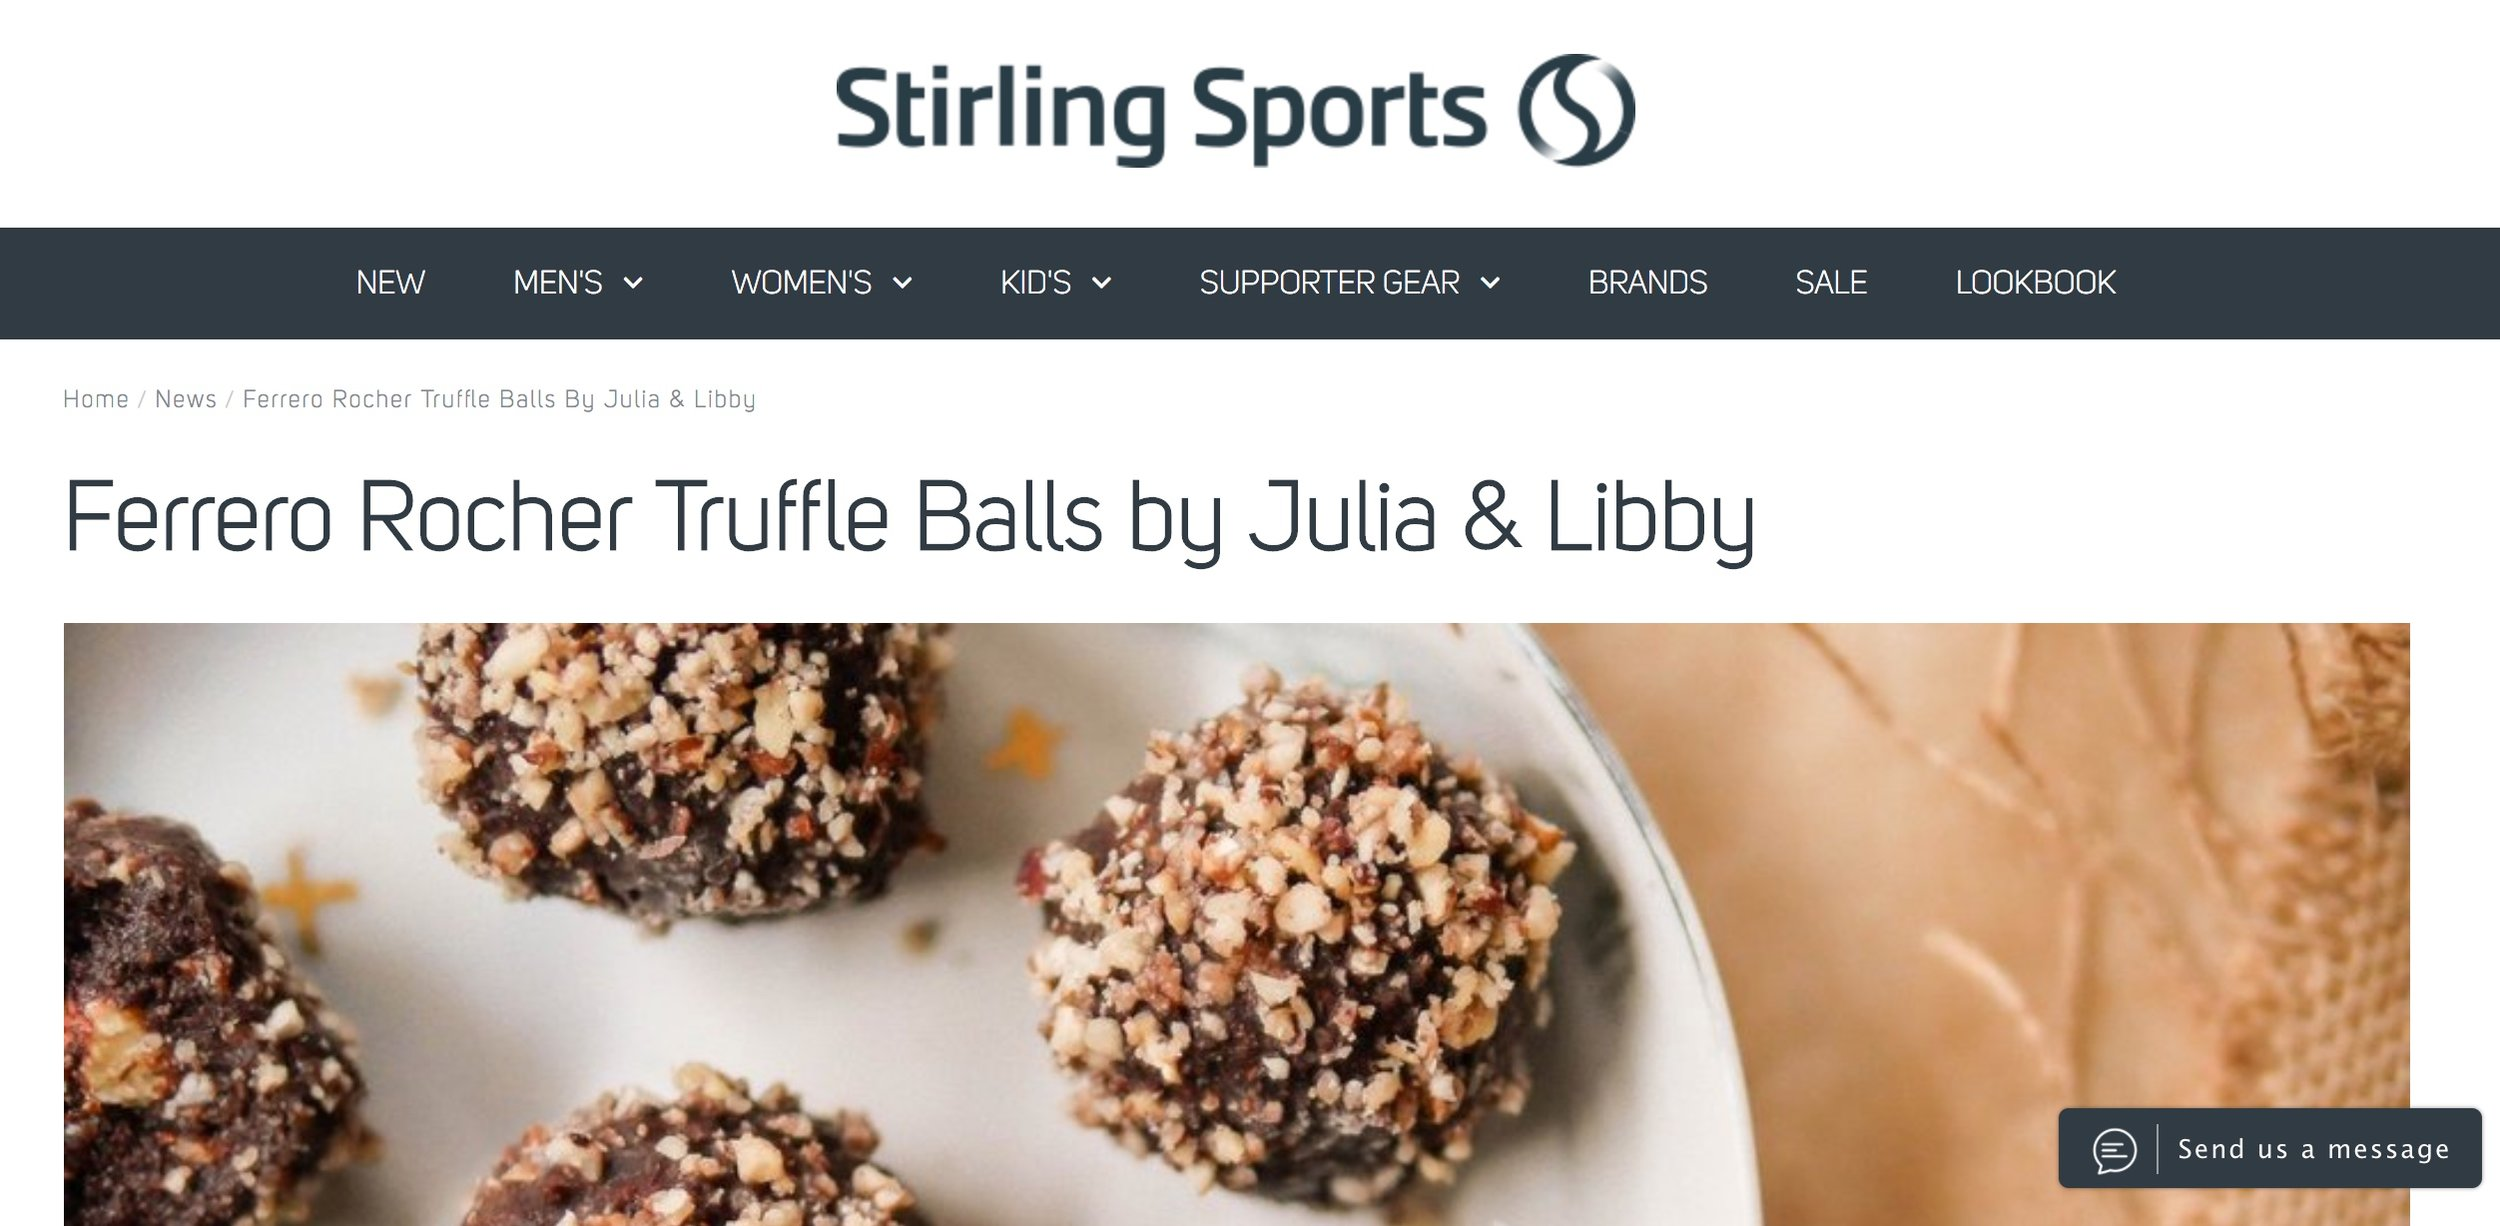 Stirling Sport - Ferrero Rocher Truffle Balls Read Here